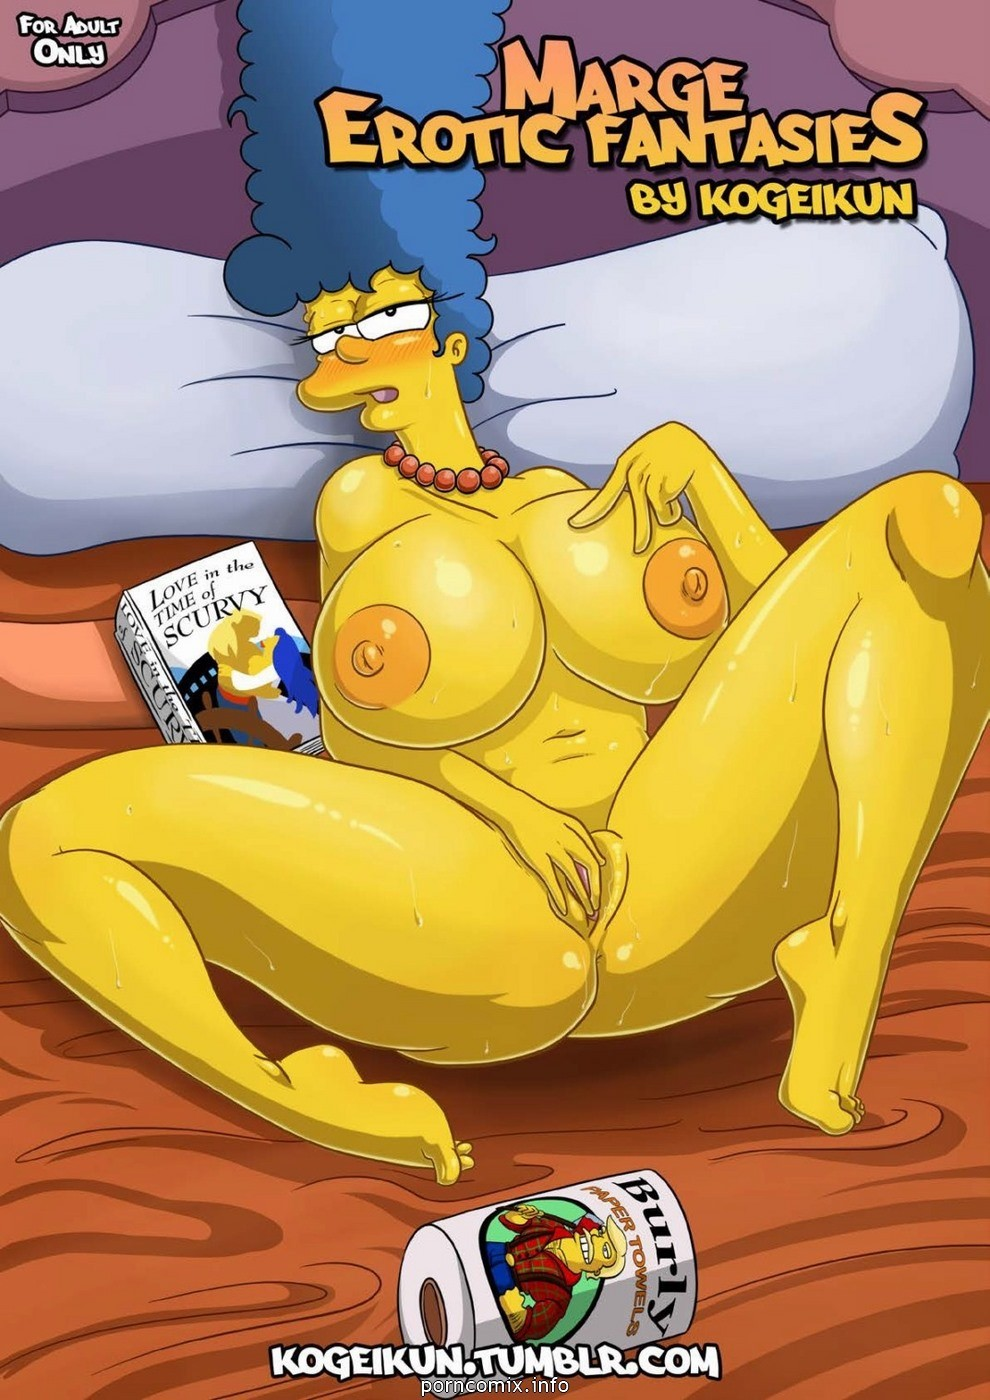 Marge-Erotic-Fantasies-01.jpg